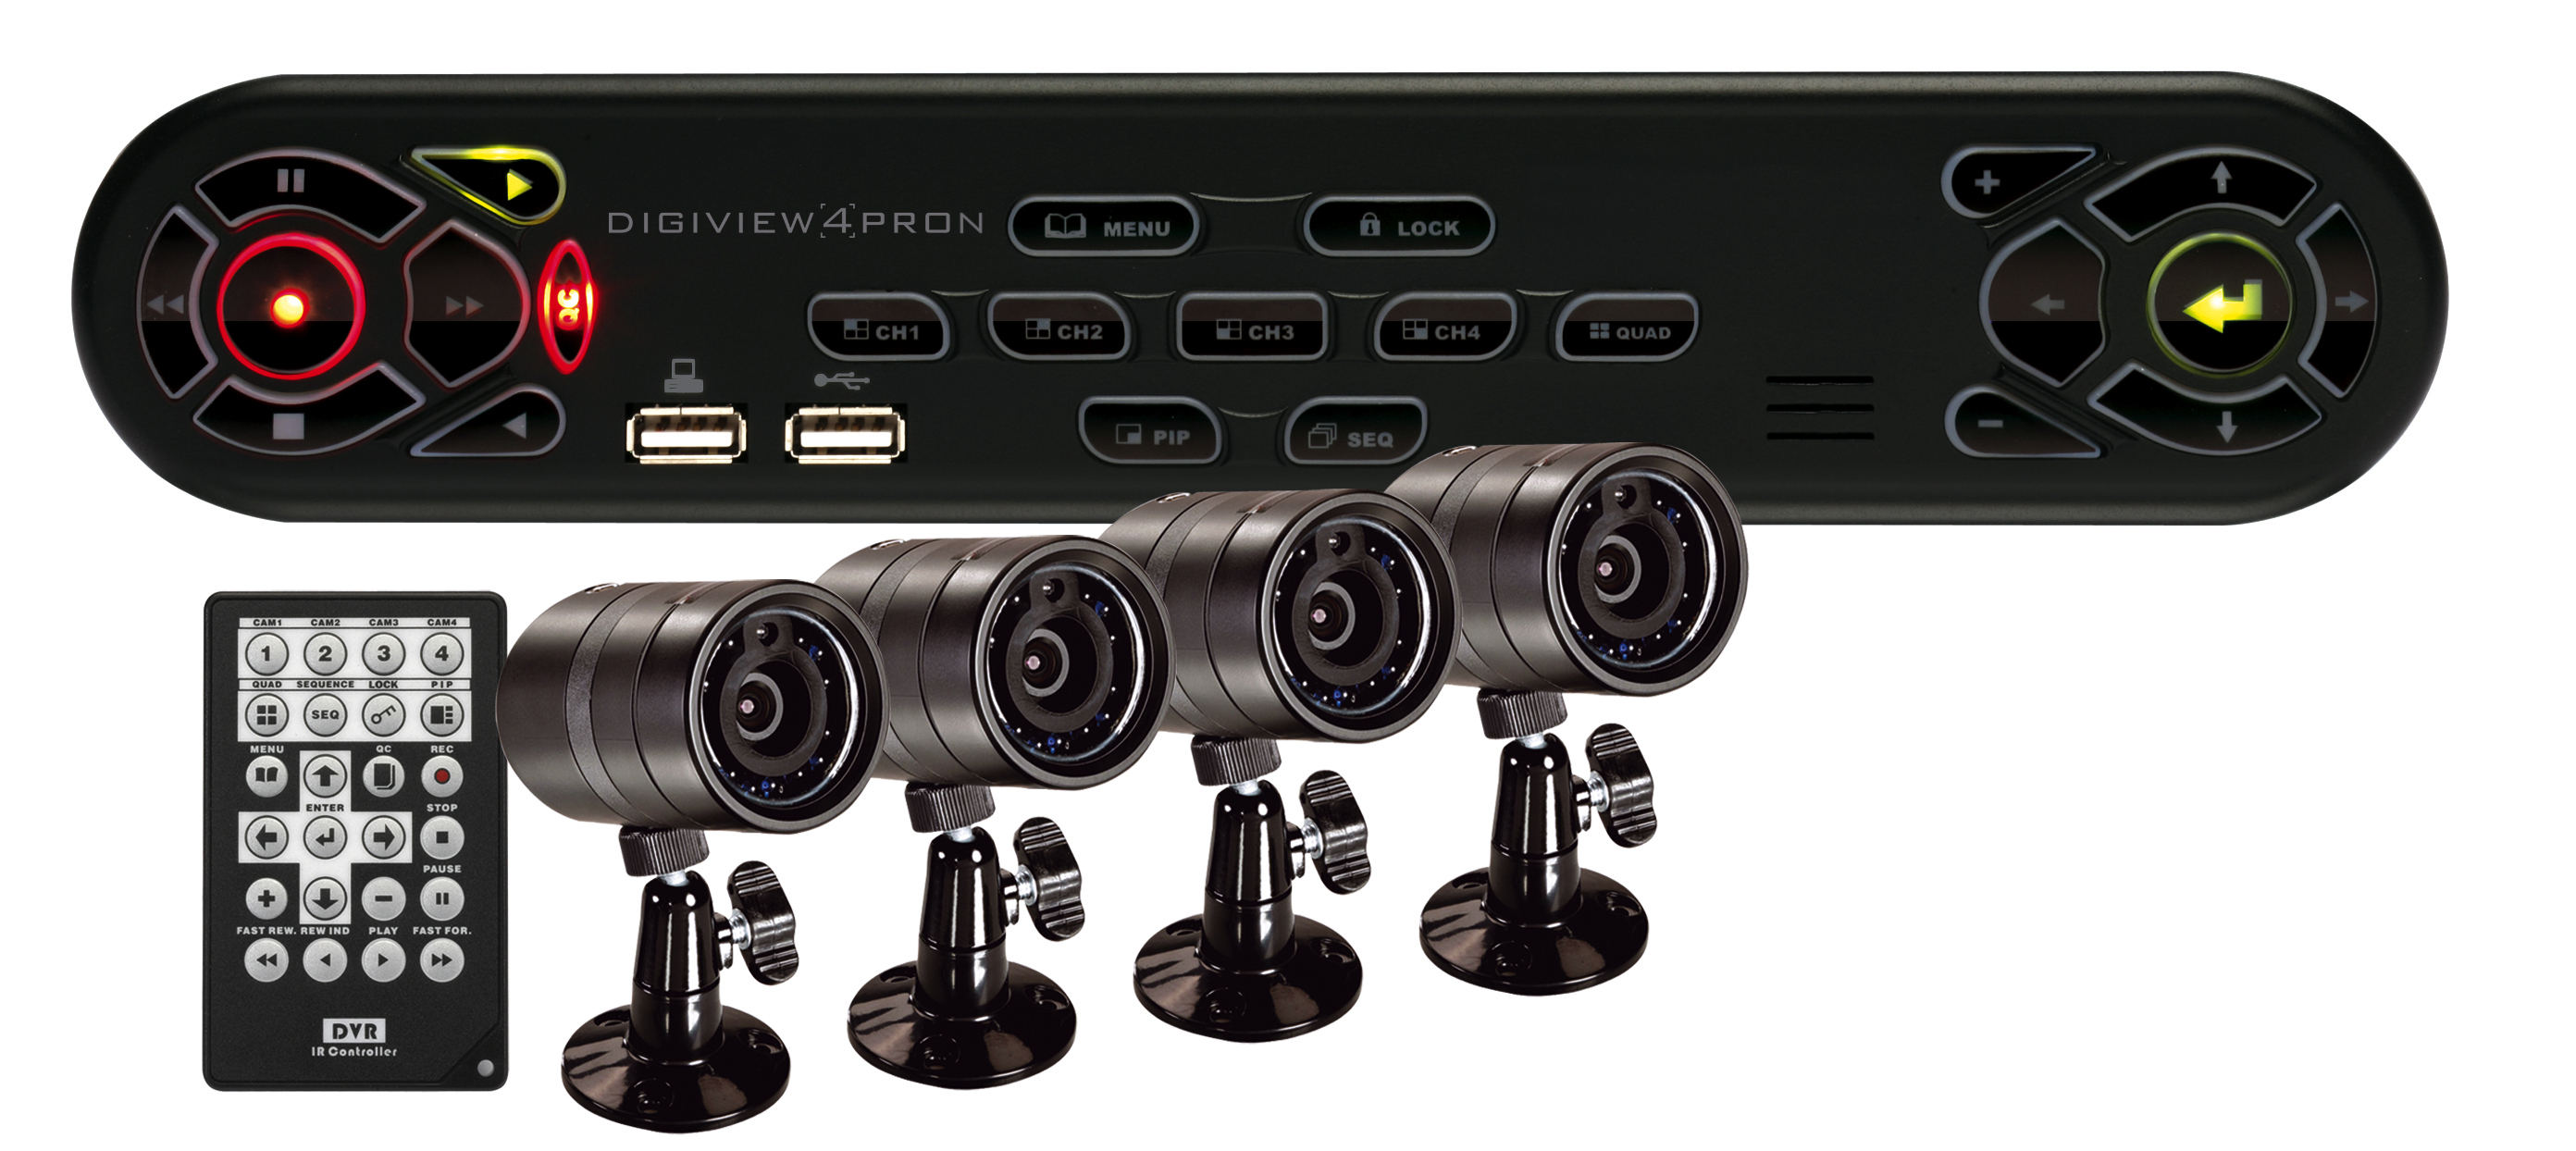 cctv systems internet viewable any windows based pc or smartphone